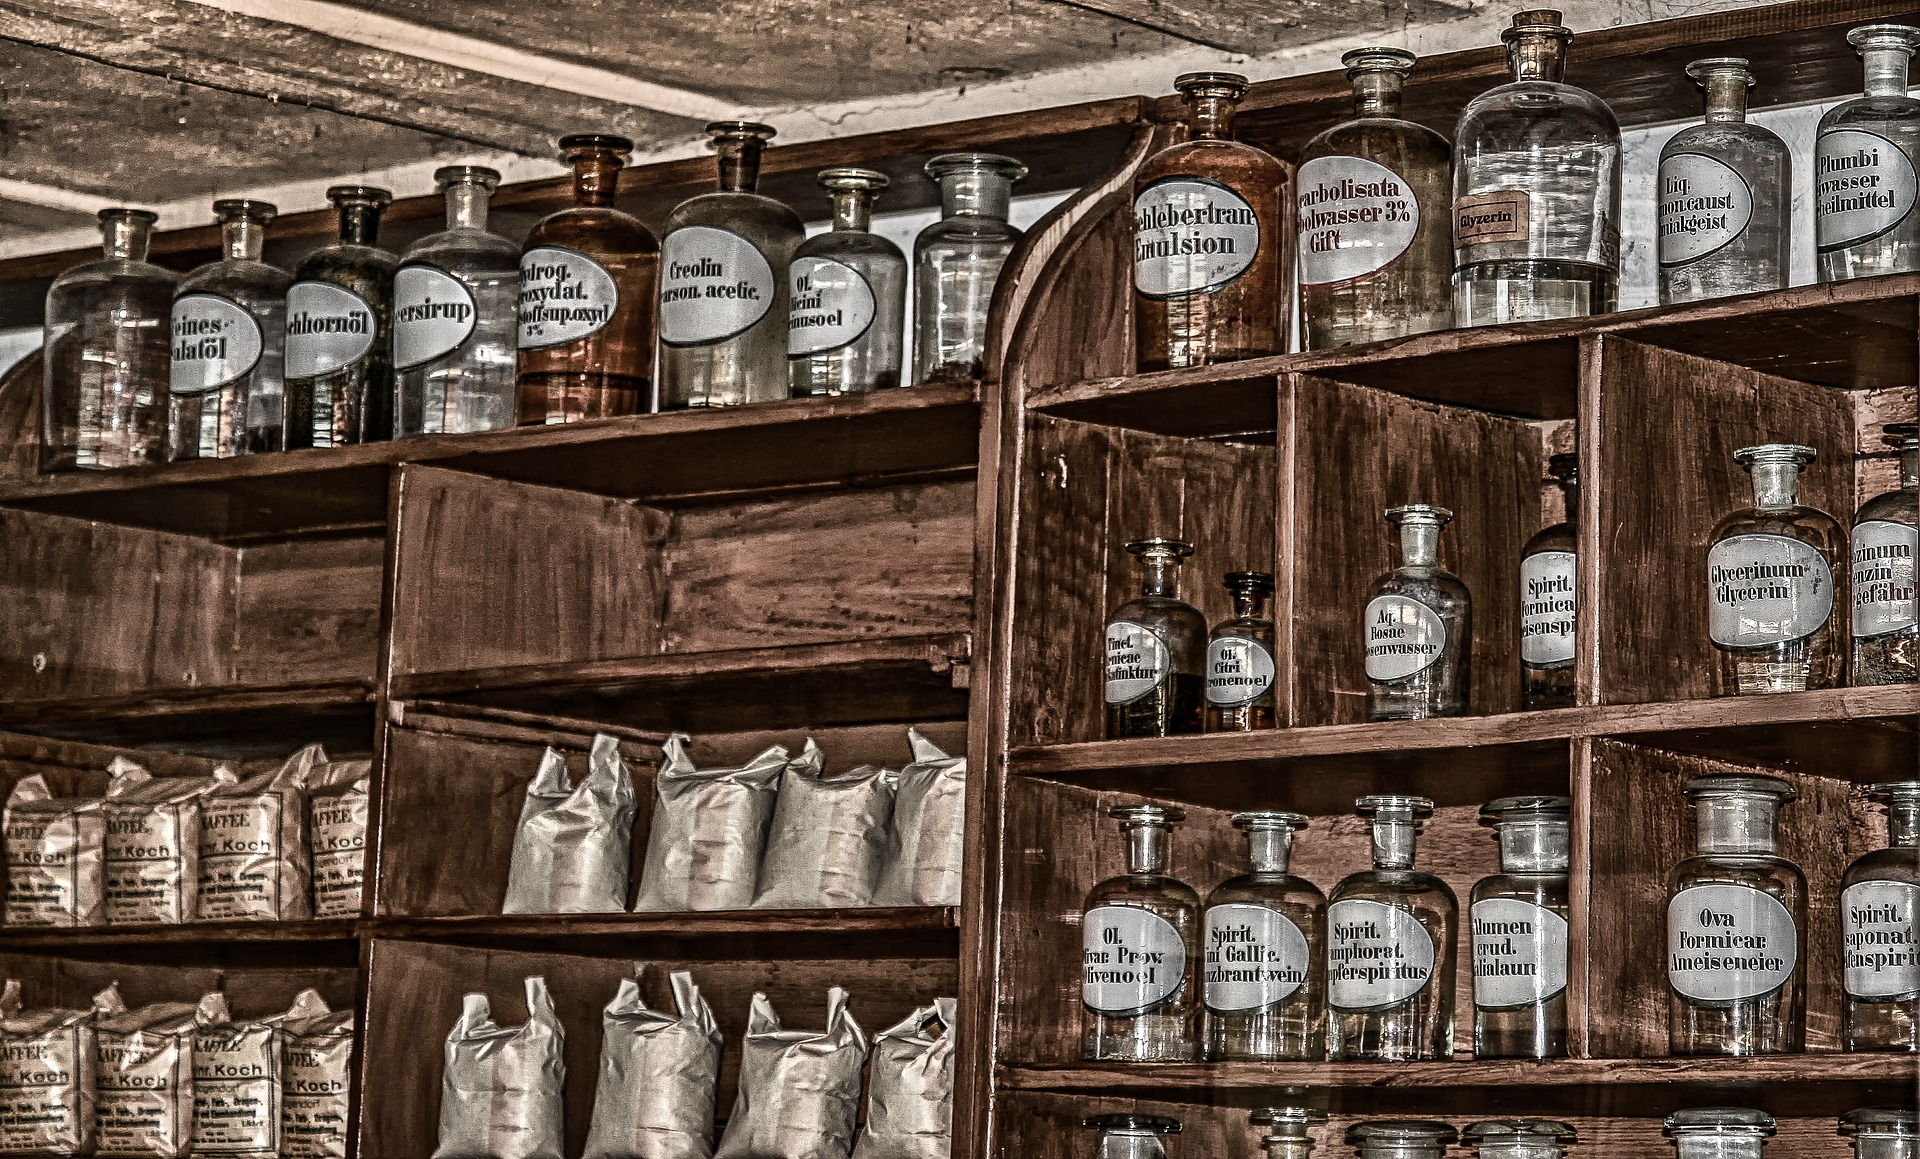 Shelves with jars